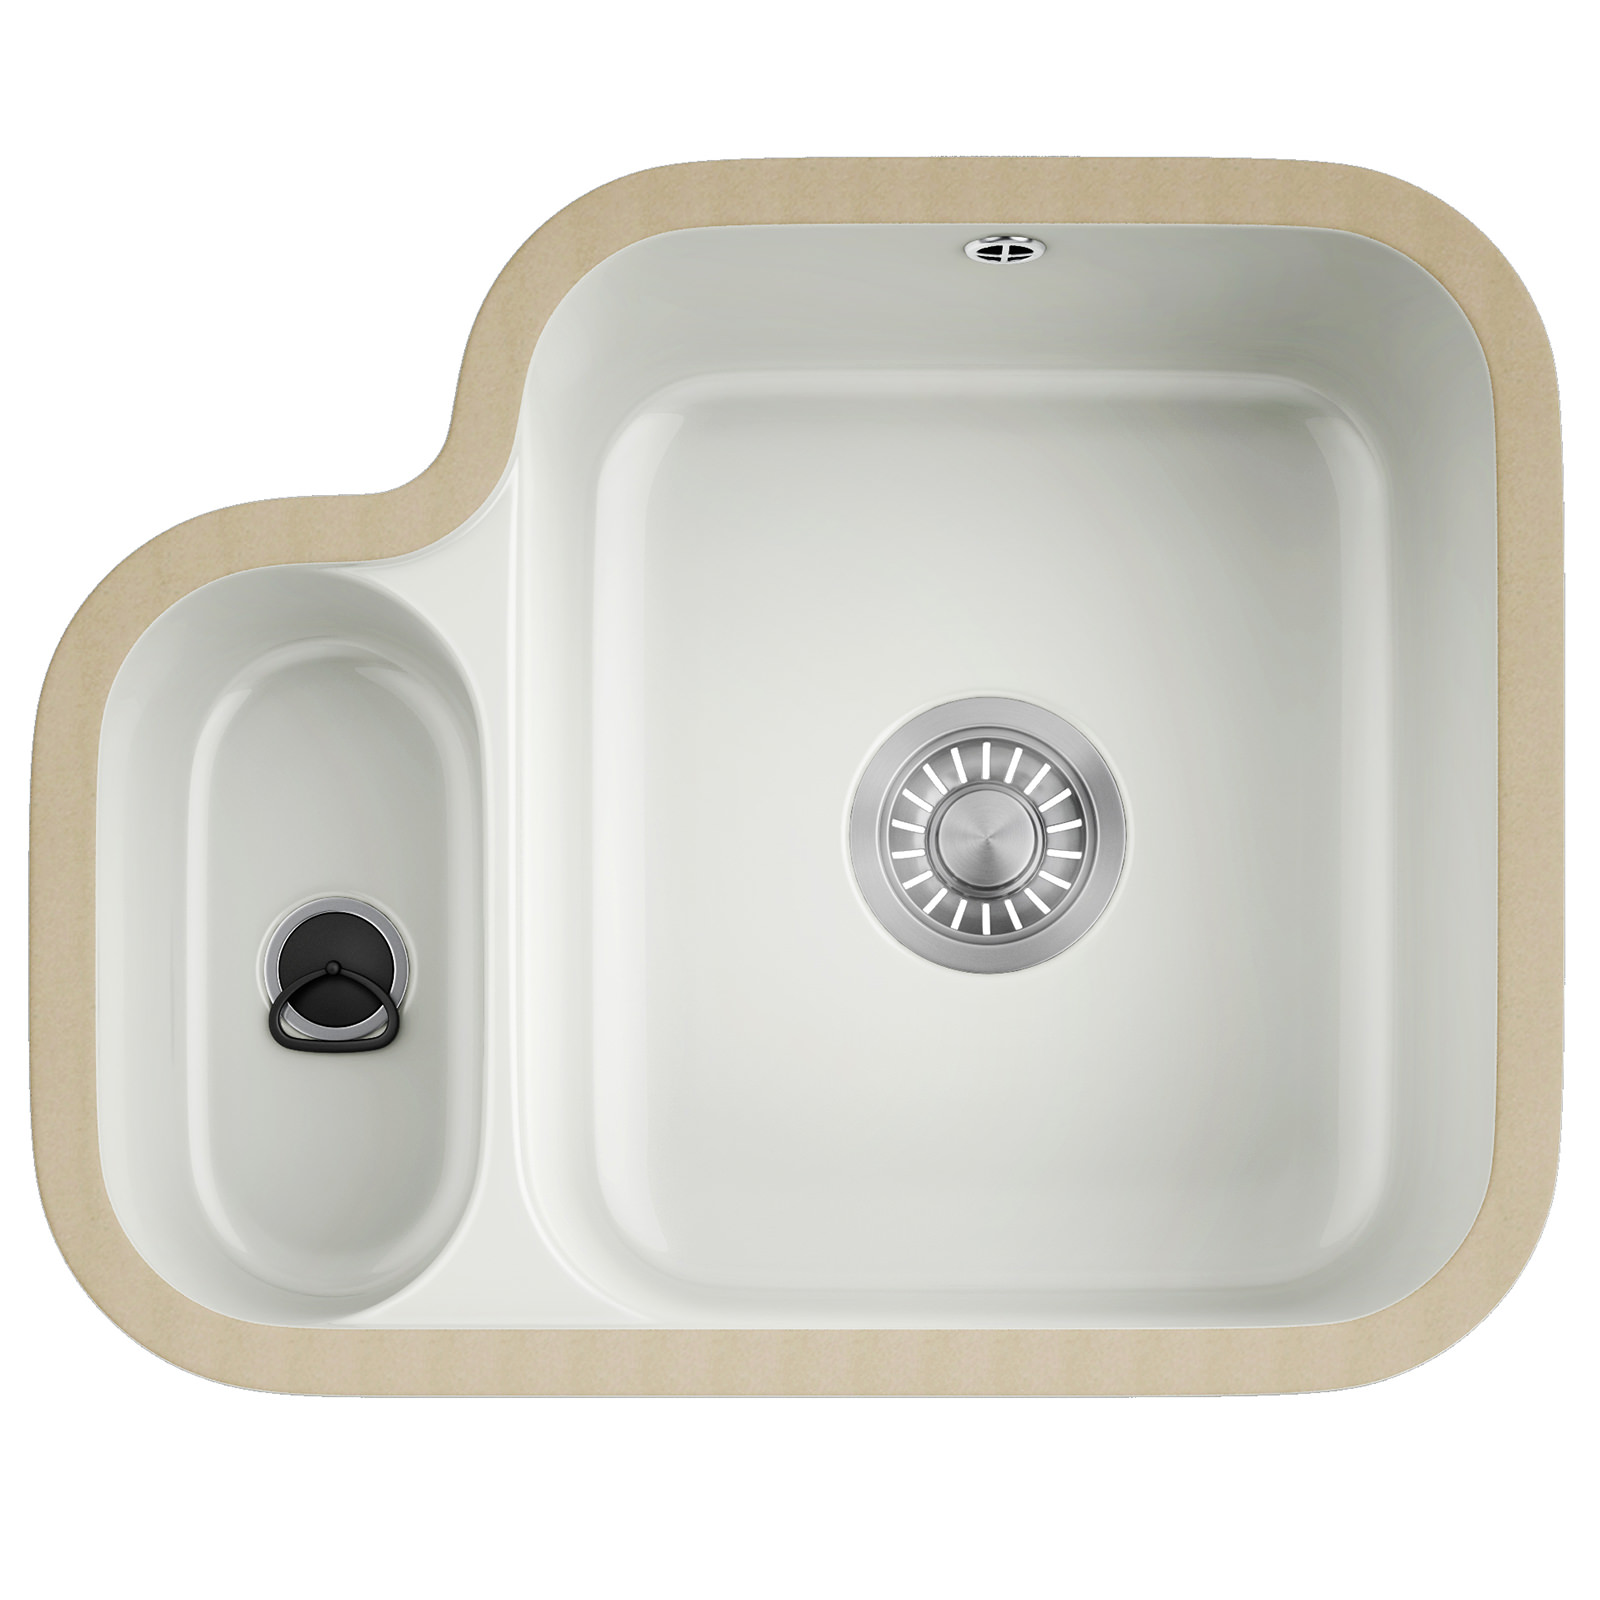 Franke V And B VBK 160 Ceramic White 1.5 Bowl Undermount Sink 126 ...